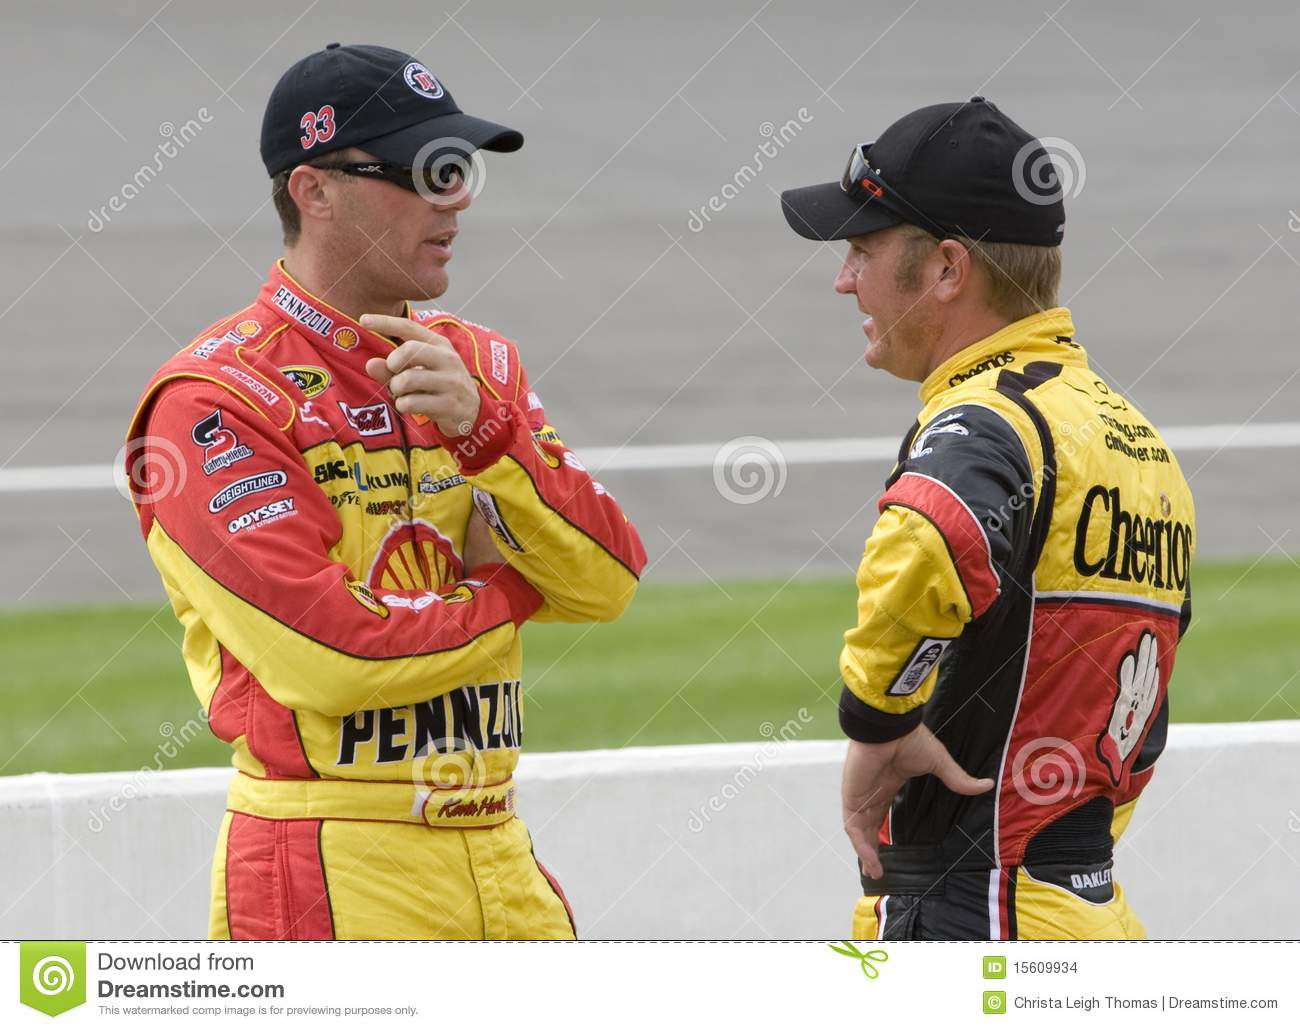 Kevin Harvick talks with Clint Bowyer